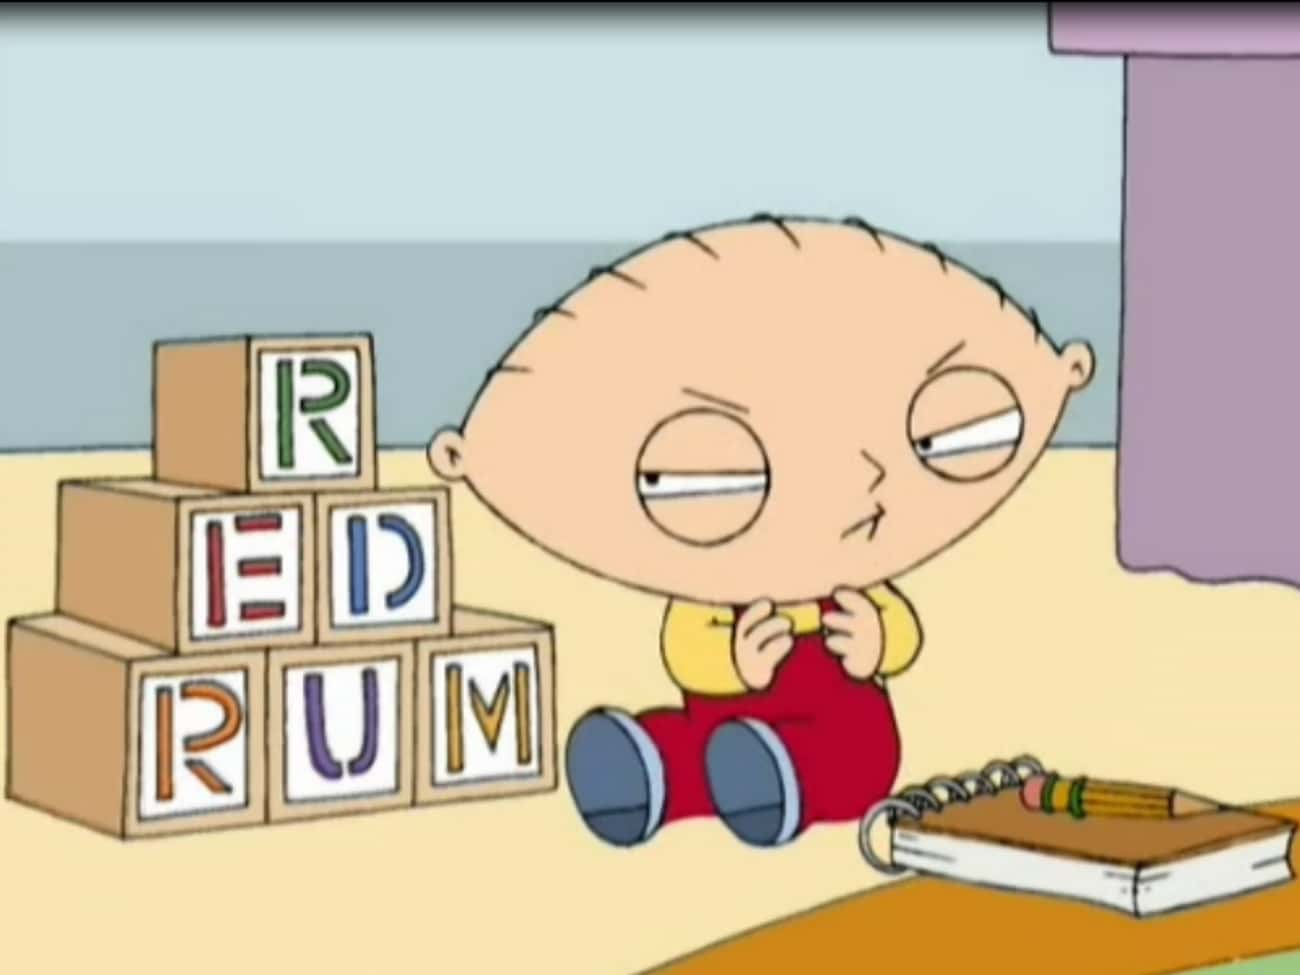 All Work and No Play Makes Stewie a Dull Boy